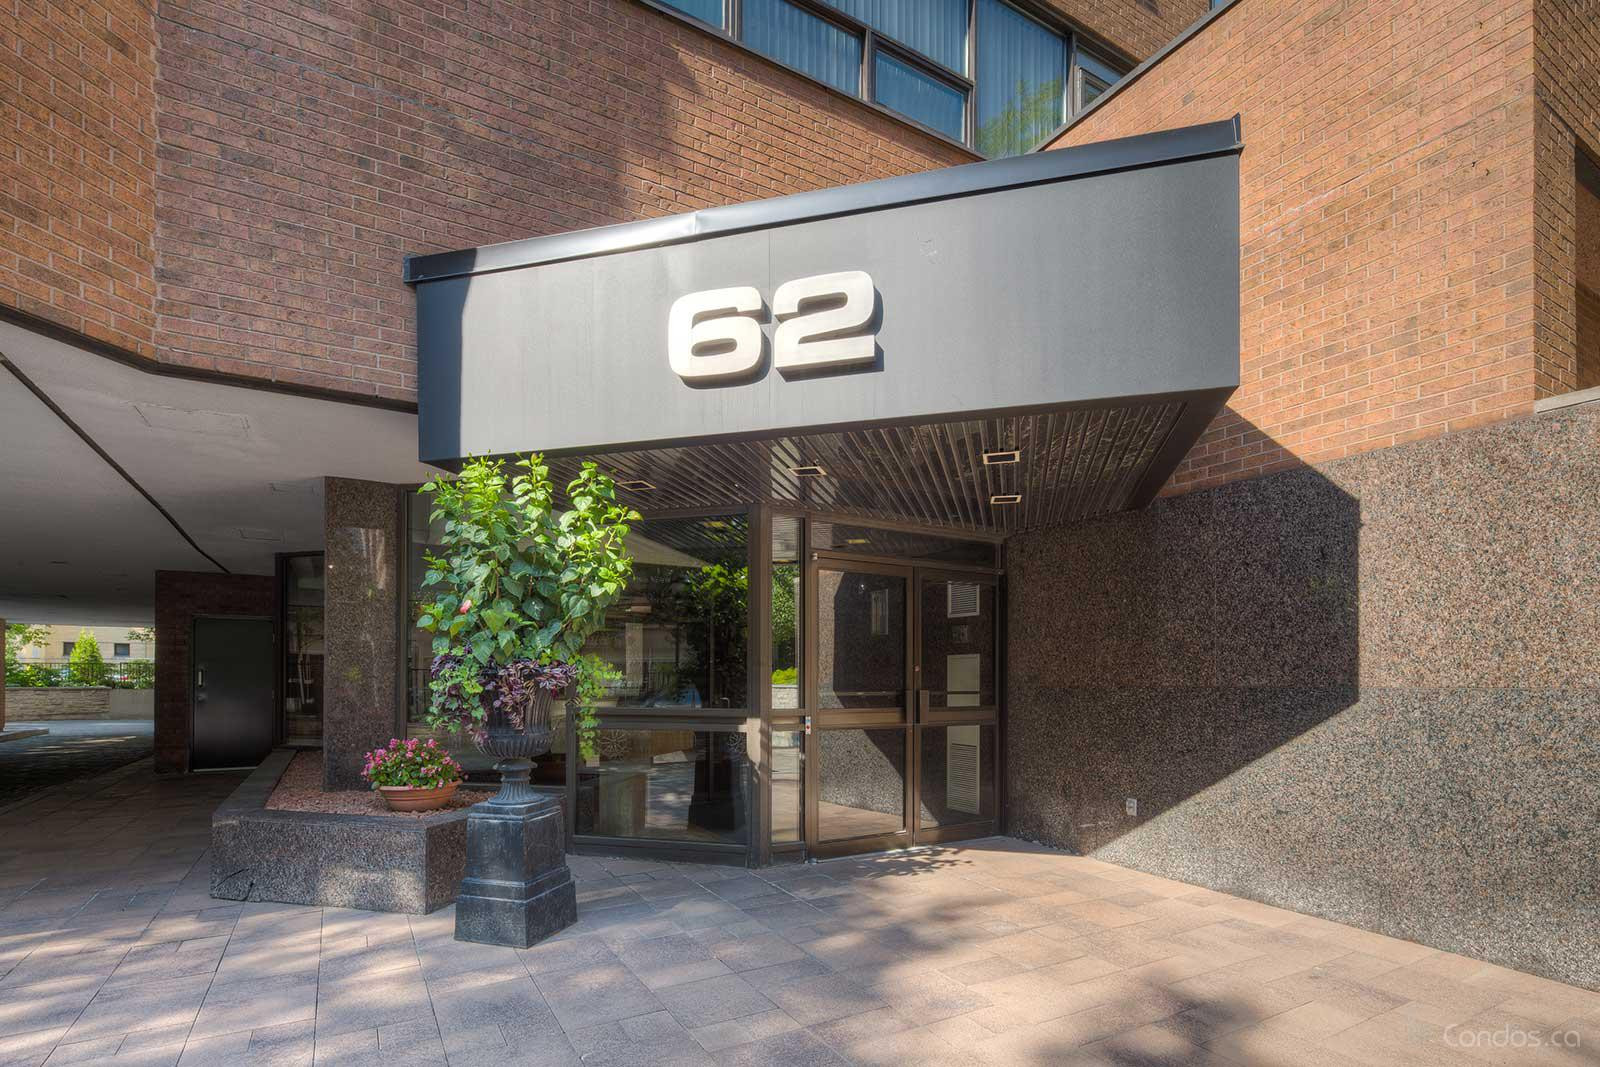 Queens Park Place at 62 Wellesley St W, Toronto 1